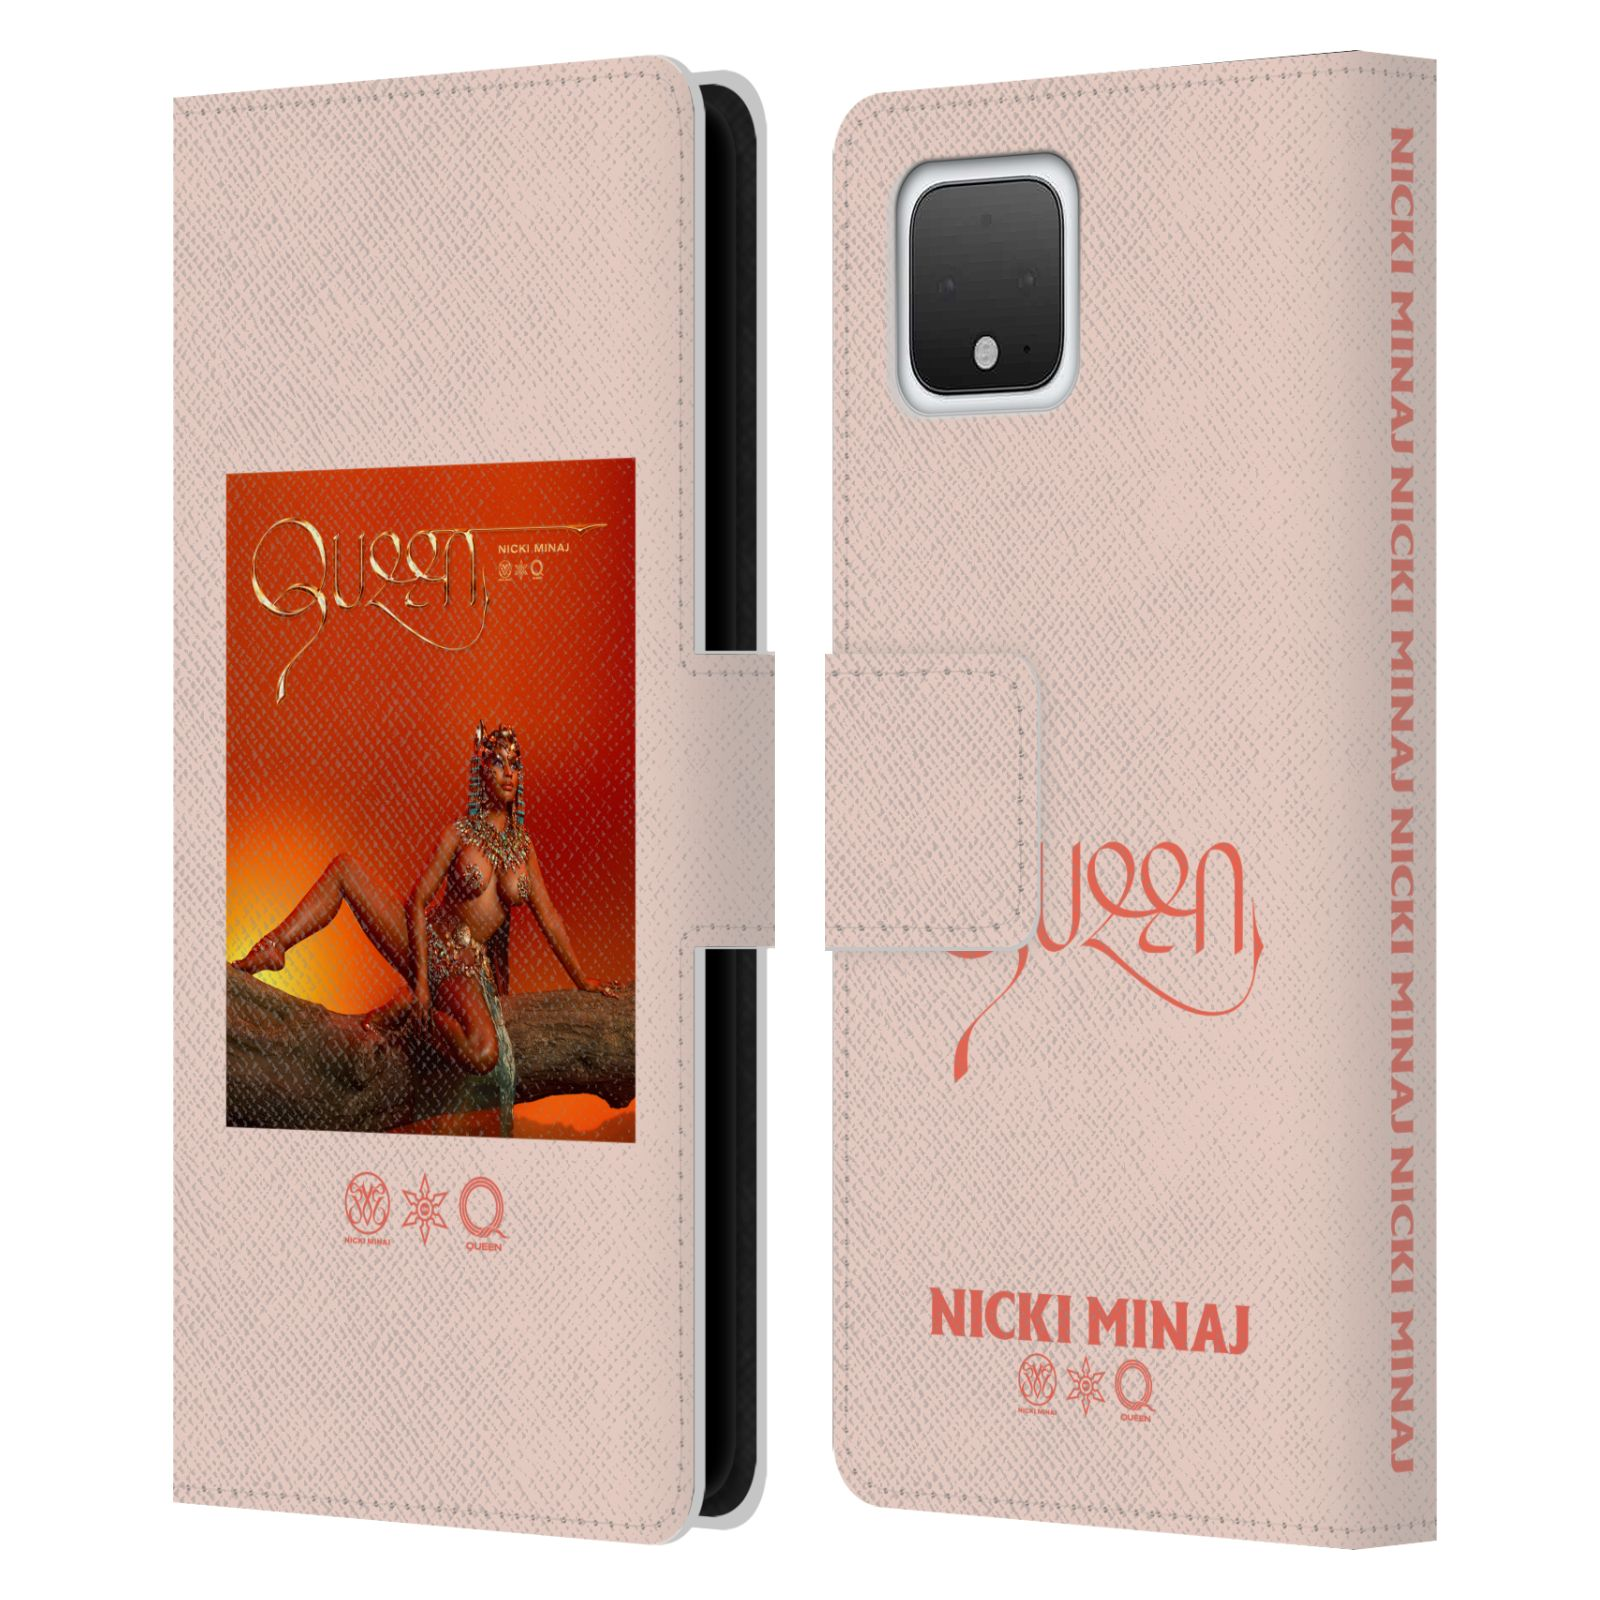 Official Nicki Minaj Album Queen Leather Book Wallet Case For Google Pixel 4